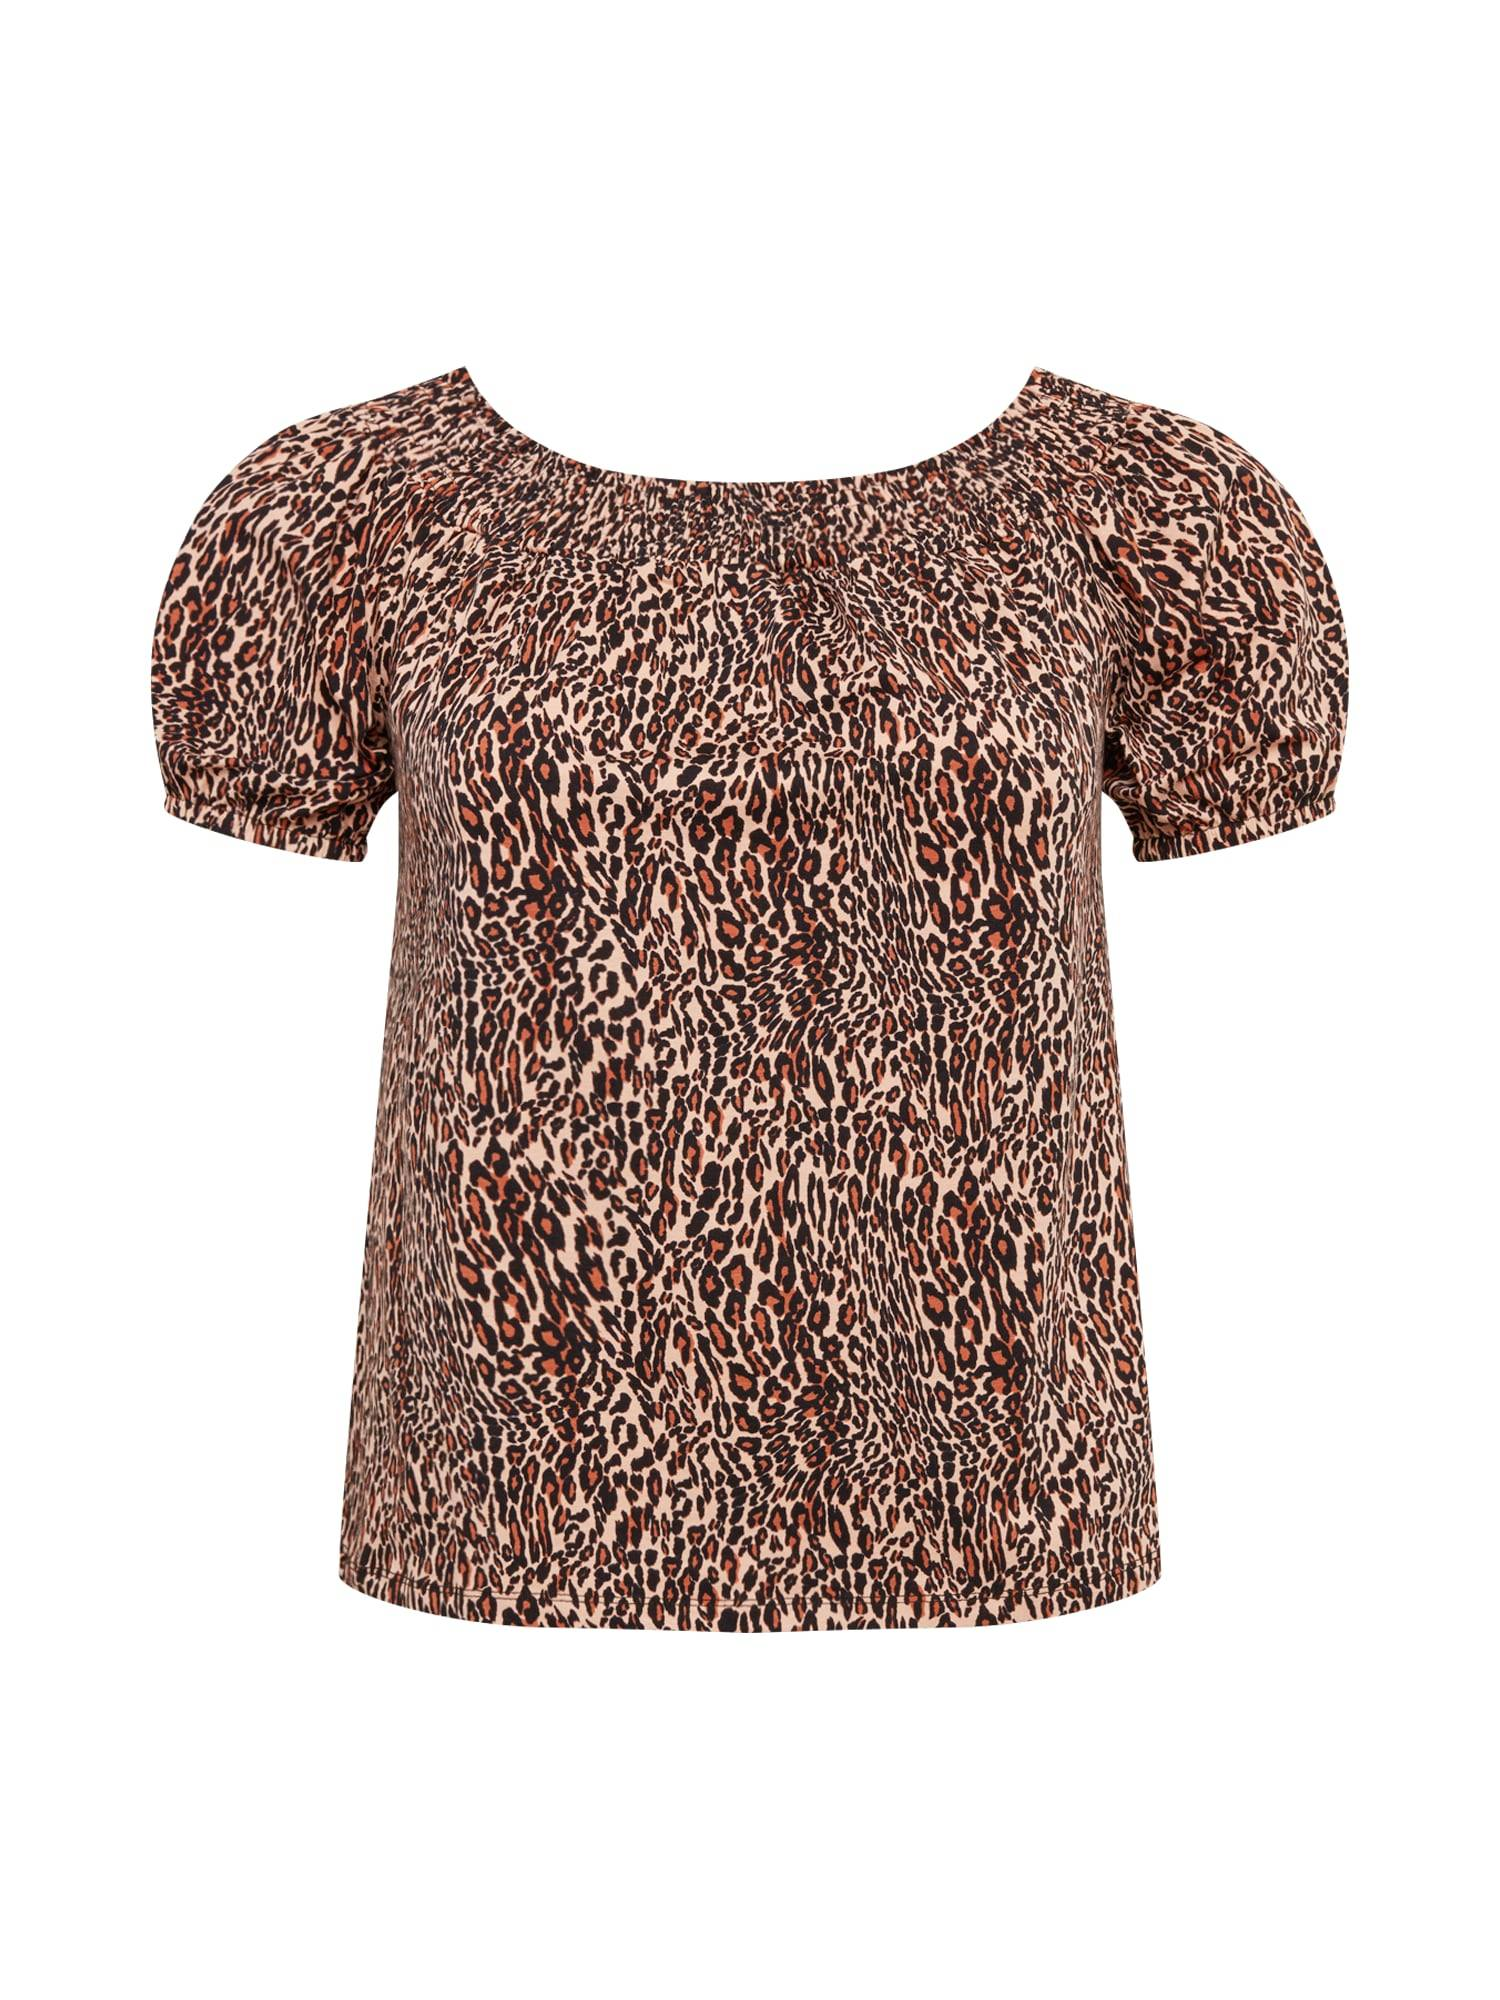 Dorothy Perkins Curve T-shirt  - Marron - Taille: 22 - female